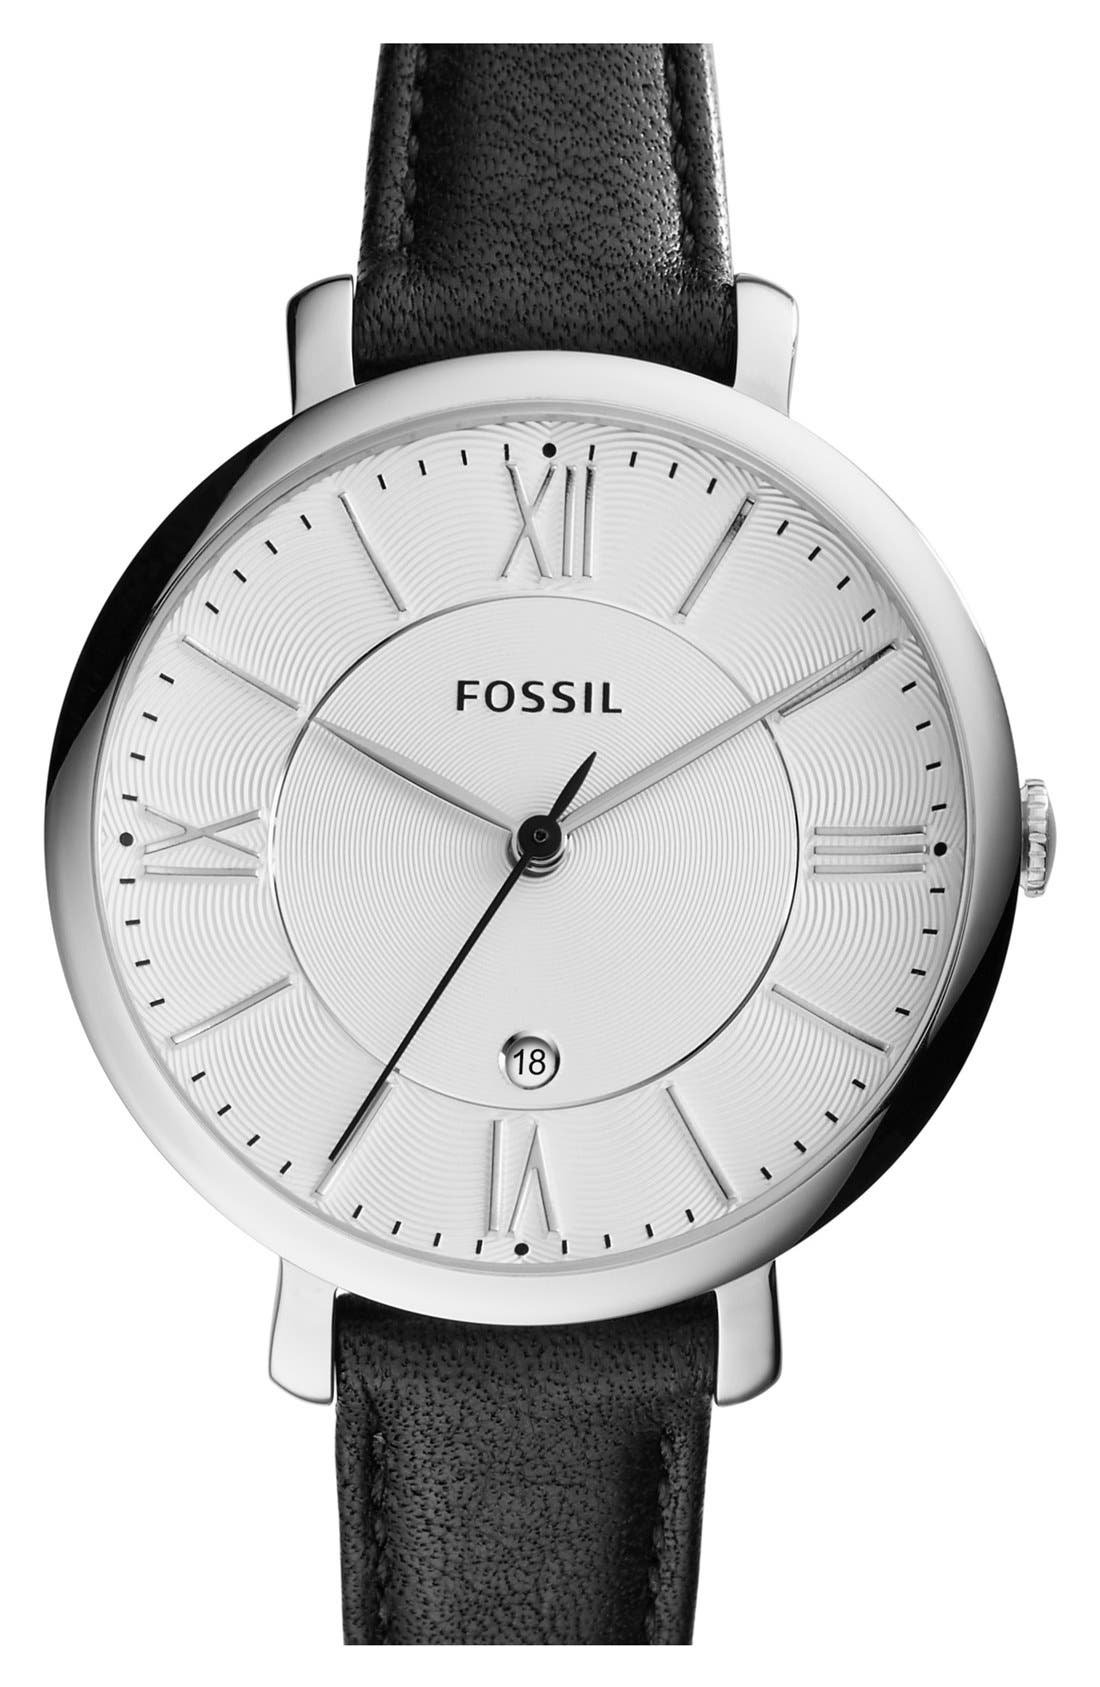 FOSSIL Jacqueline Round Leather Strap Watch, 36mm